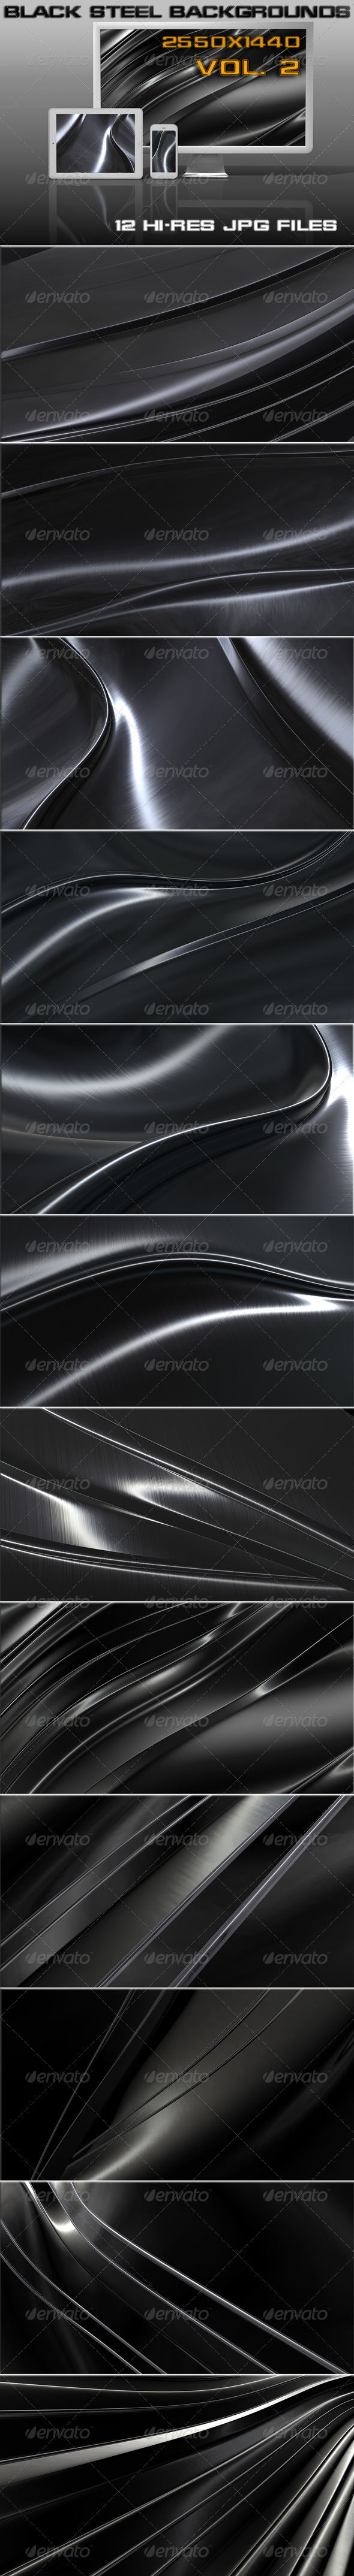 GraphicRiver Black Steel Background 5470641